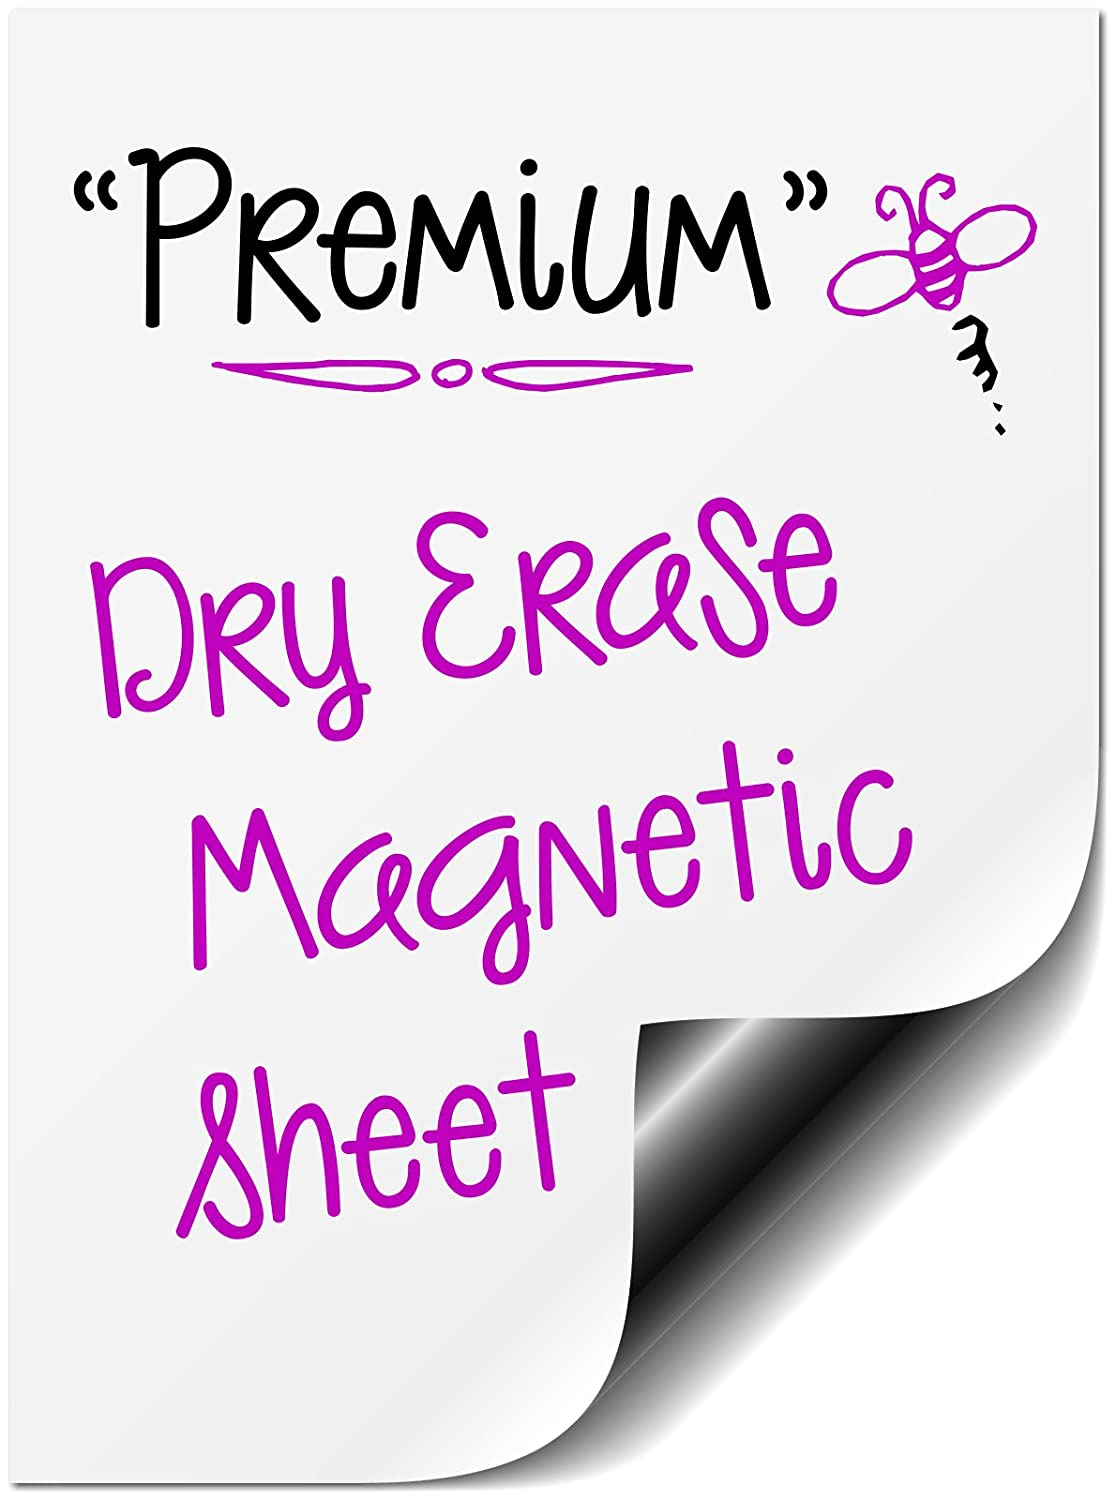 """Bigtime Magnetic 16"""" Dry Erase Message Board for Refrigerator Use as a Horizontal or Vertical Whiteboard Weekly Planner Calendar Fridge Magnet. Also Great as a Meal, Grocery, To Do or Chore List"""